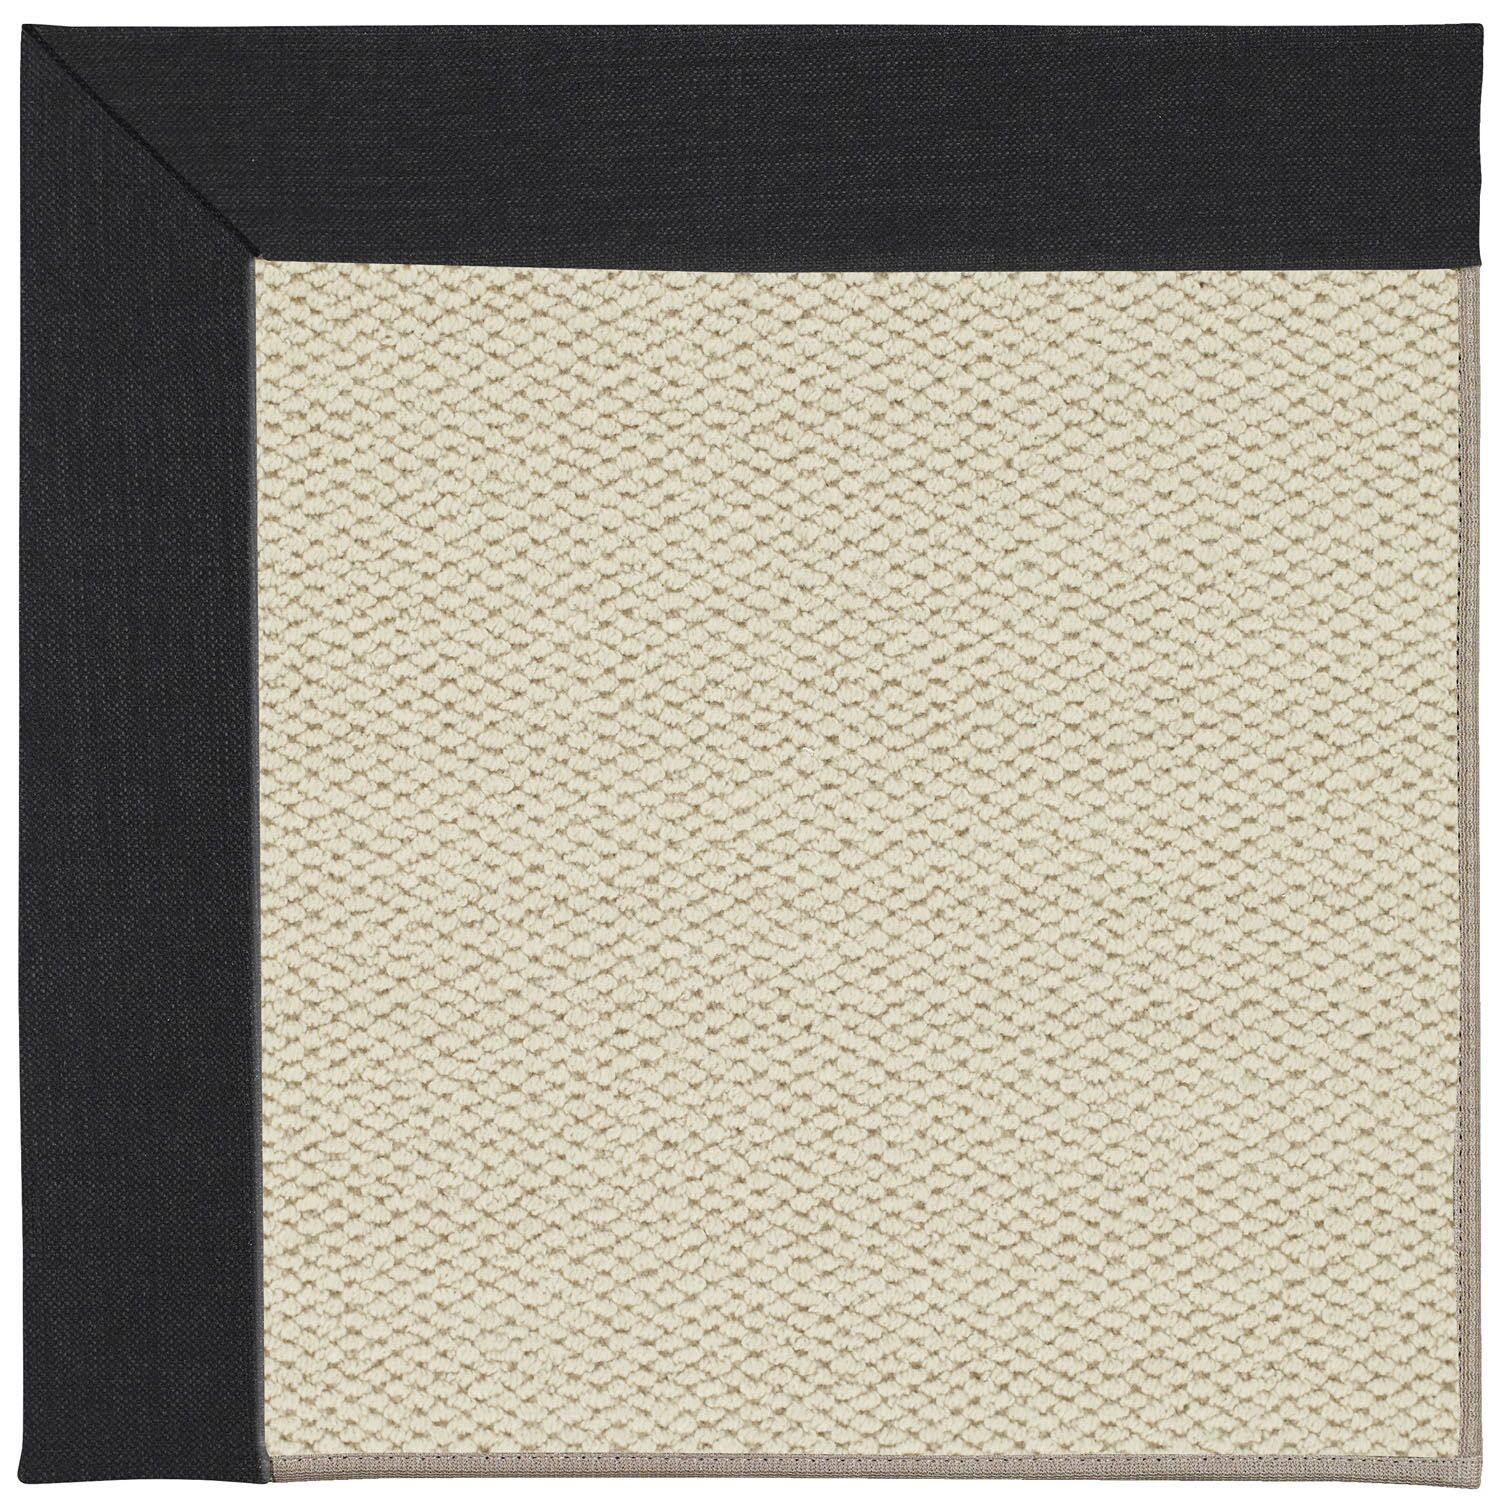 Barrett Linen Machine Tufted Ebony/Brown Area Rug Rug Size: Rectangle 7' x 9'